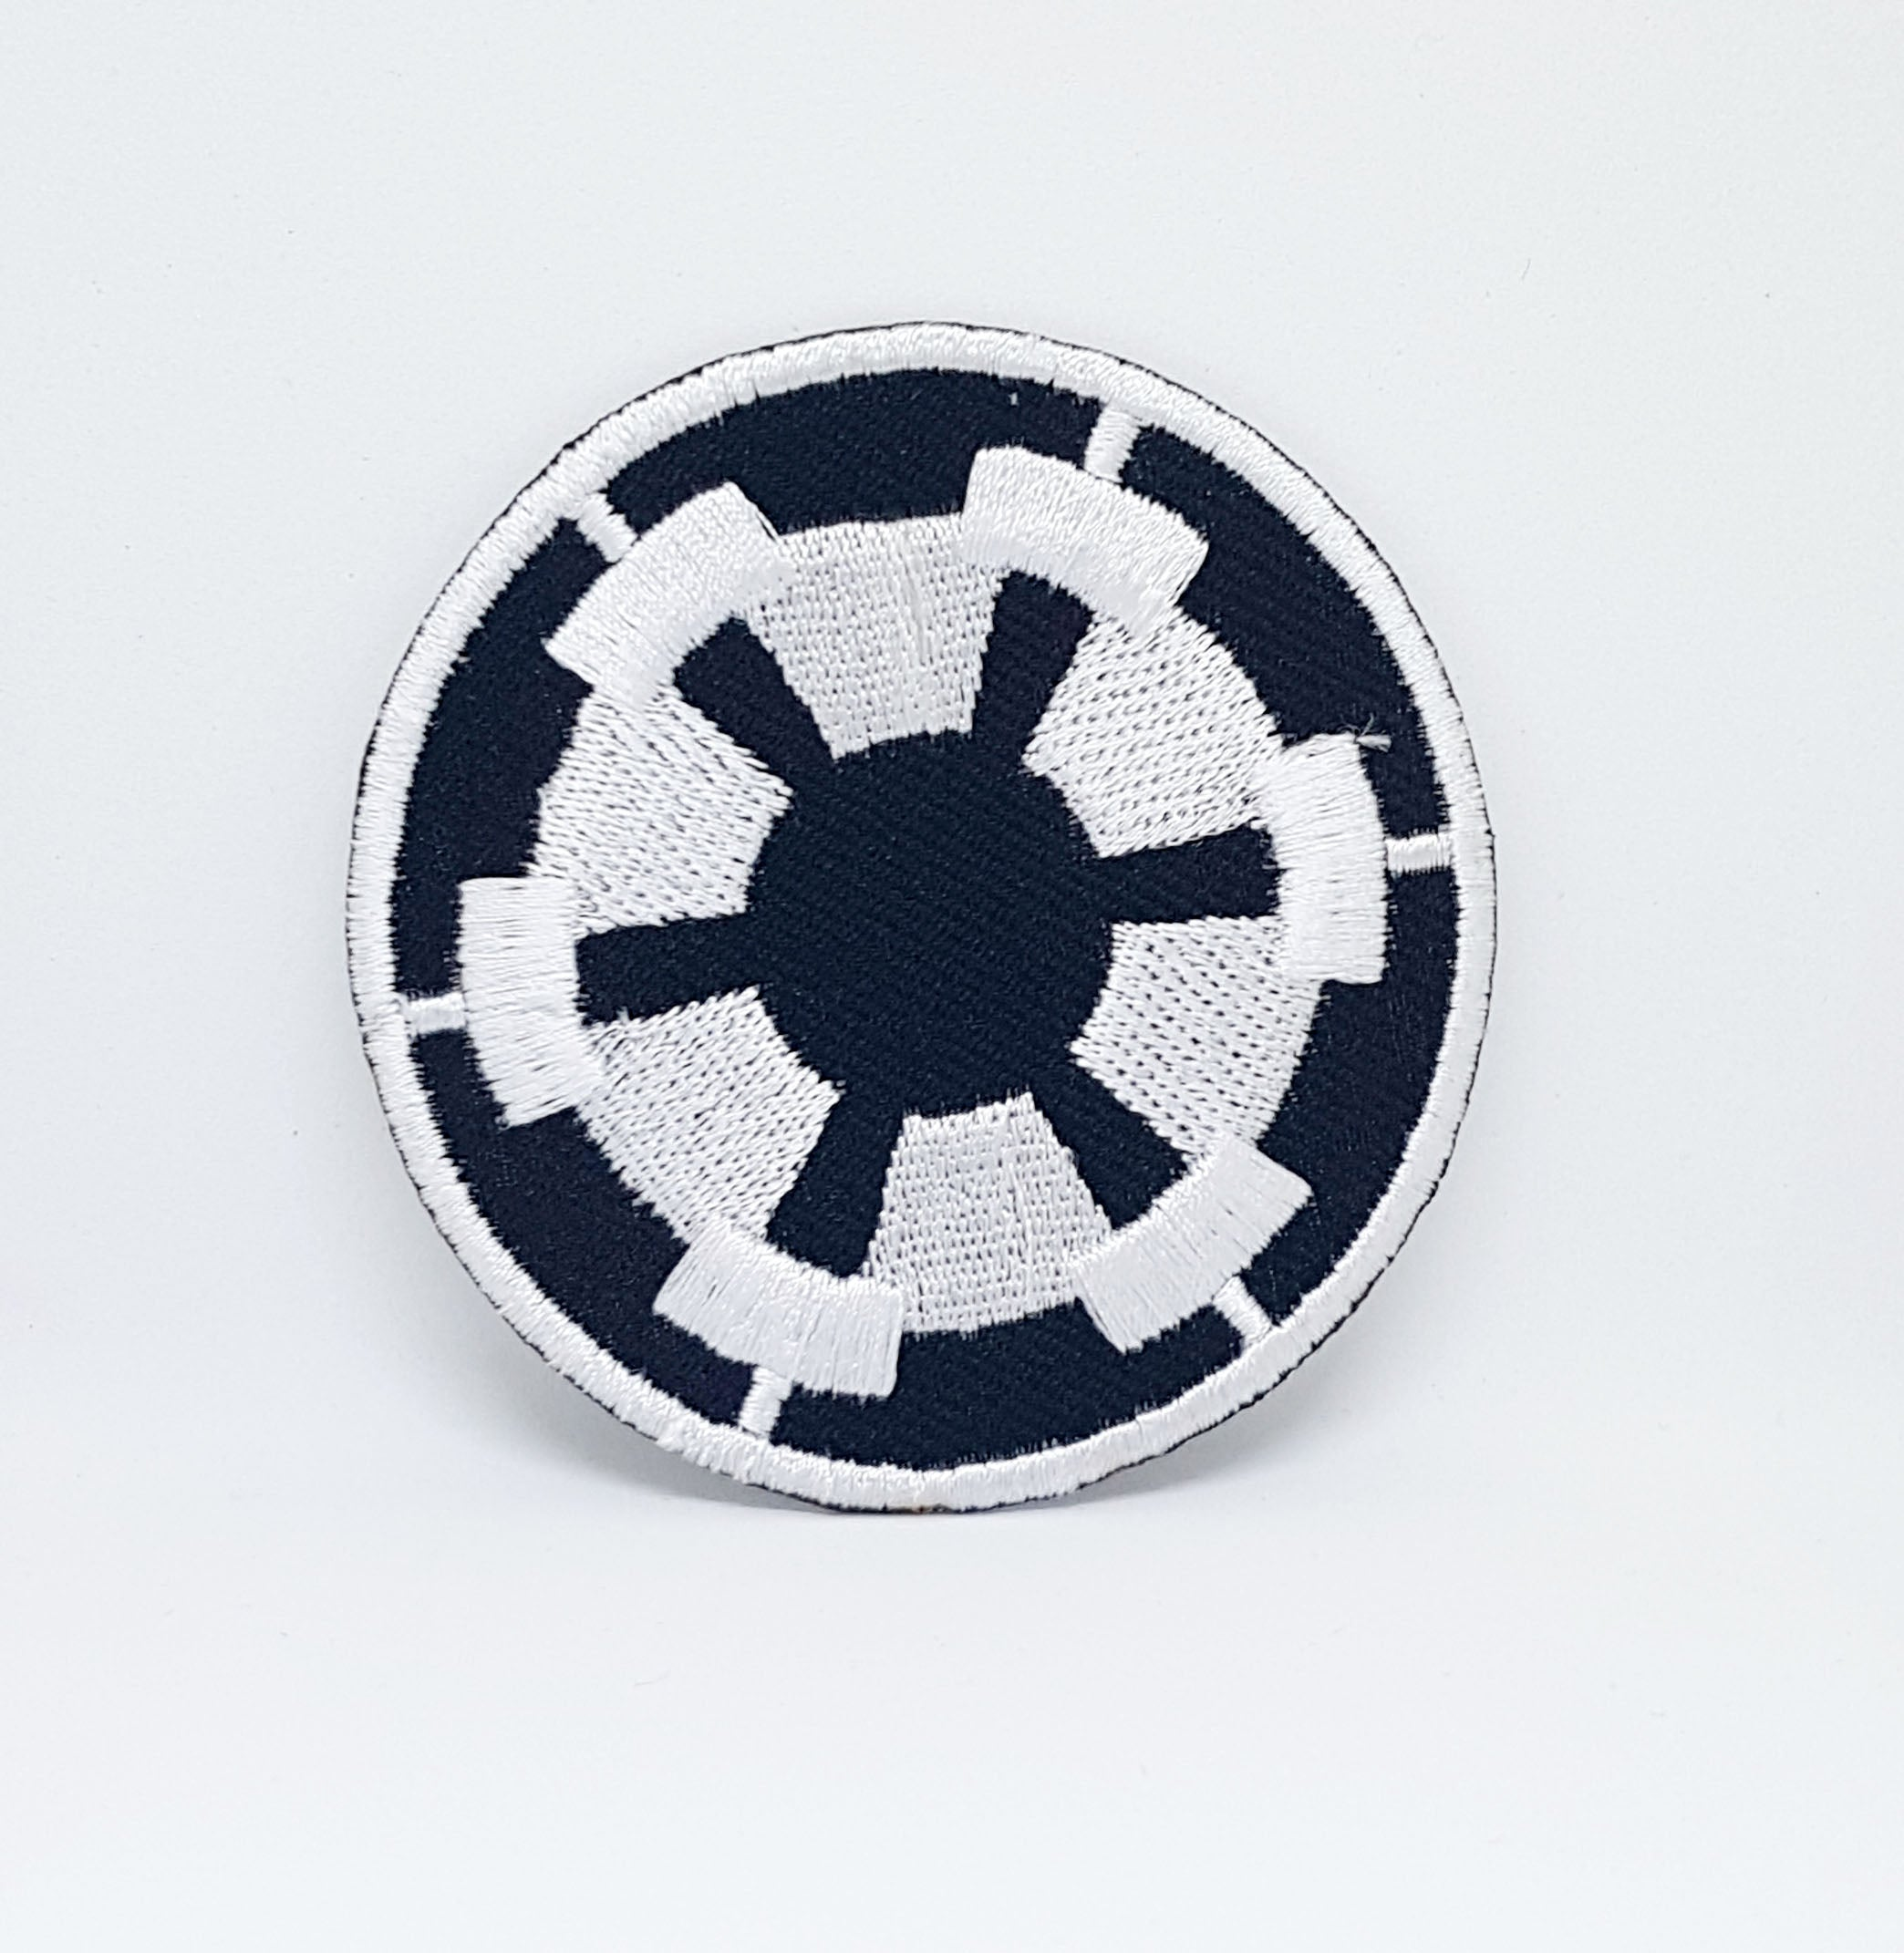 STAR WARS Movies Iron or Sew on Embroidered Patches - STAR WARS BLACK IMPERIAL FORCES